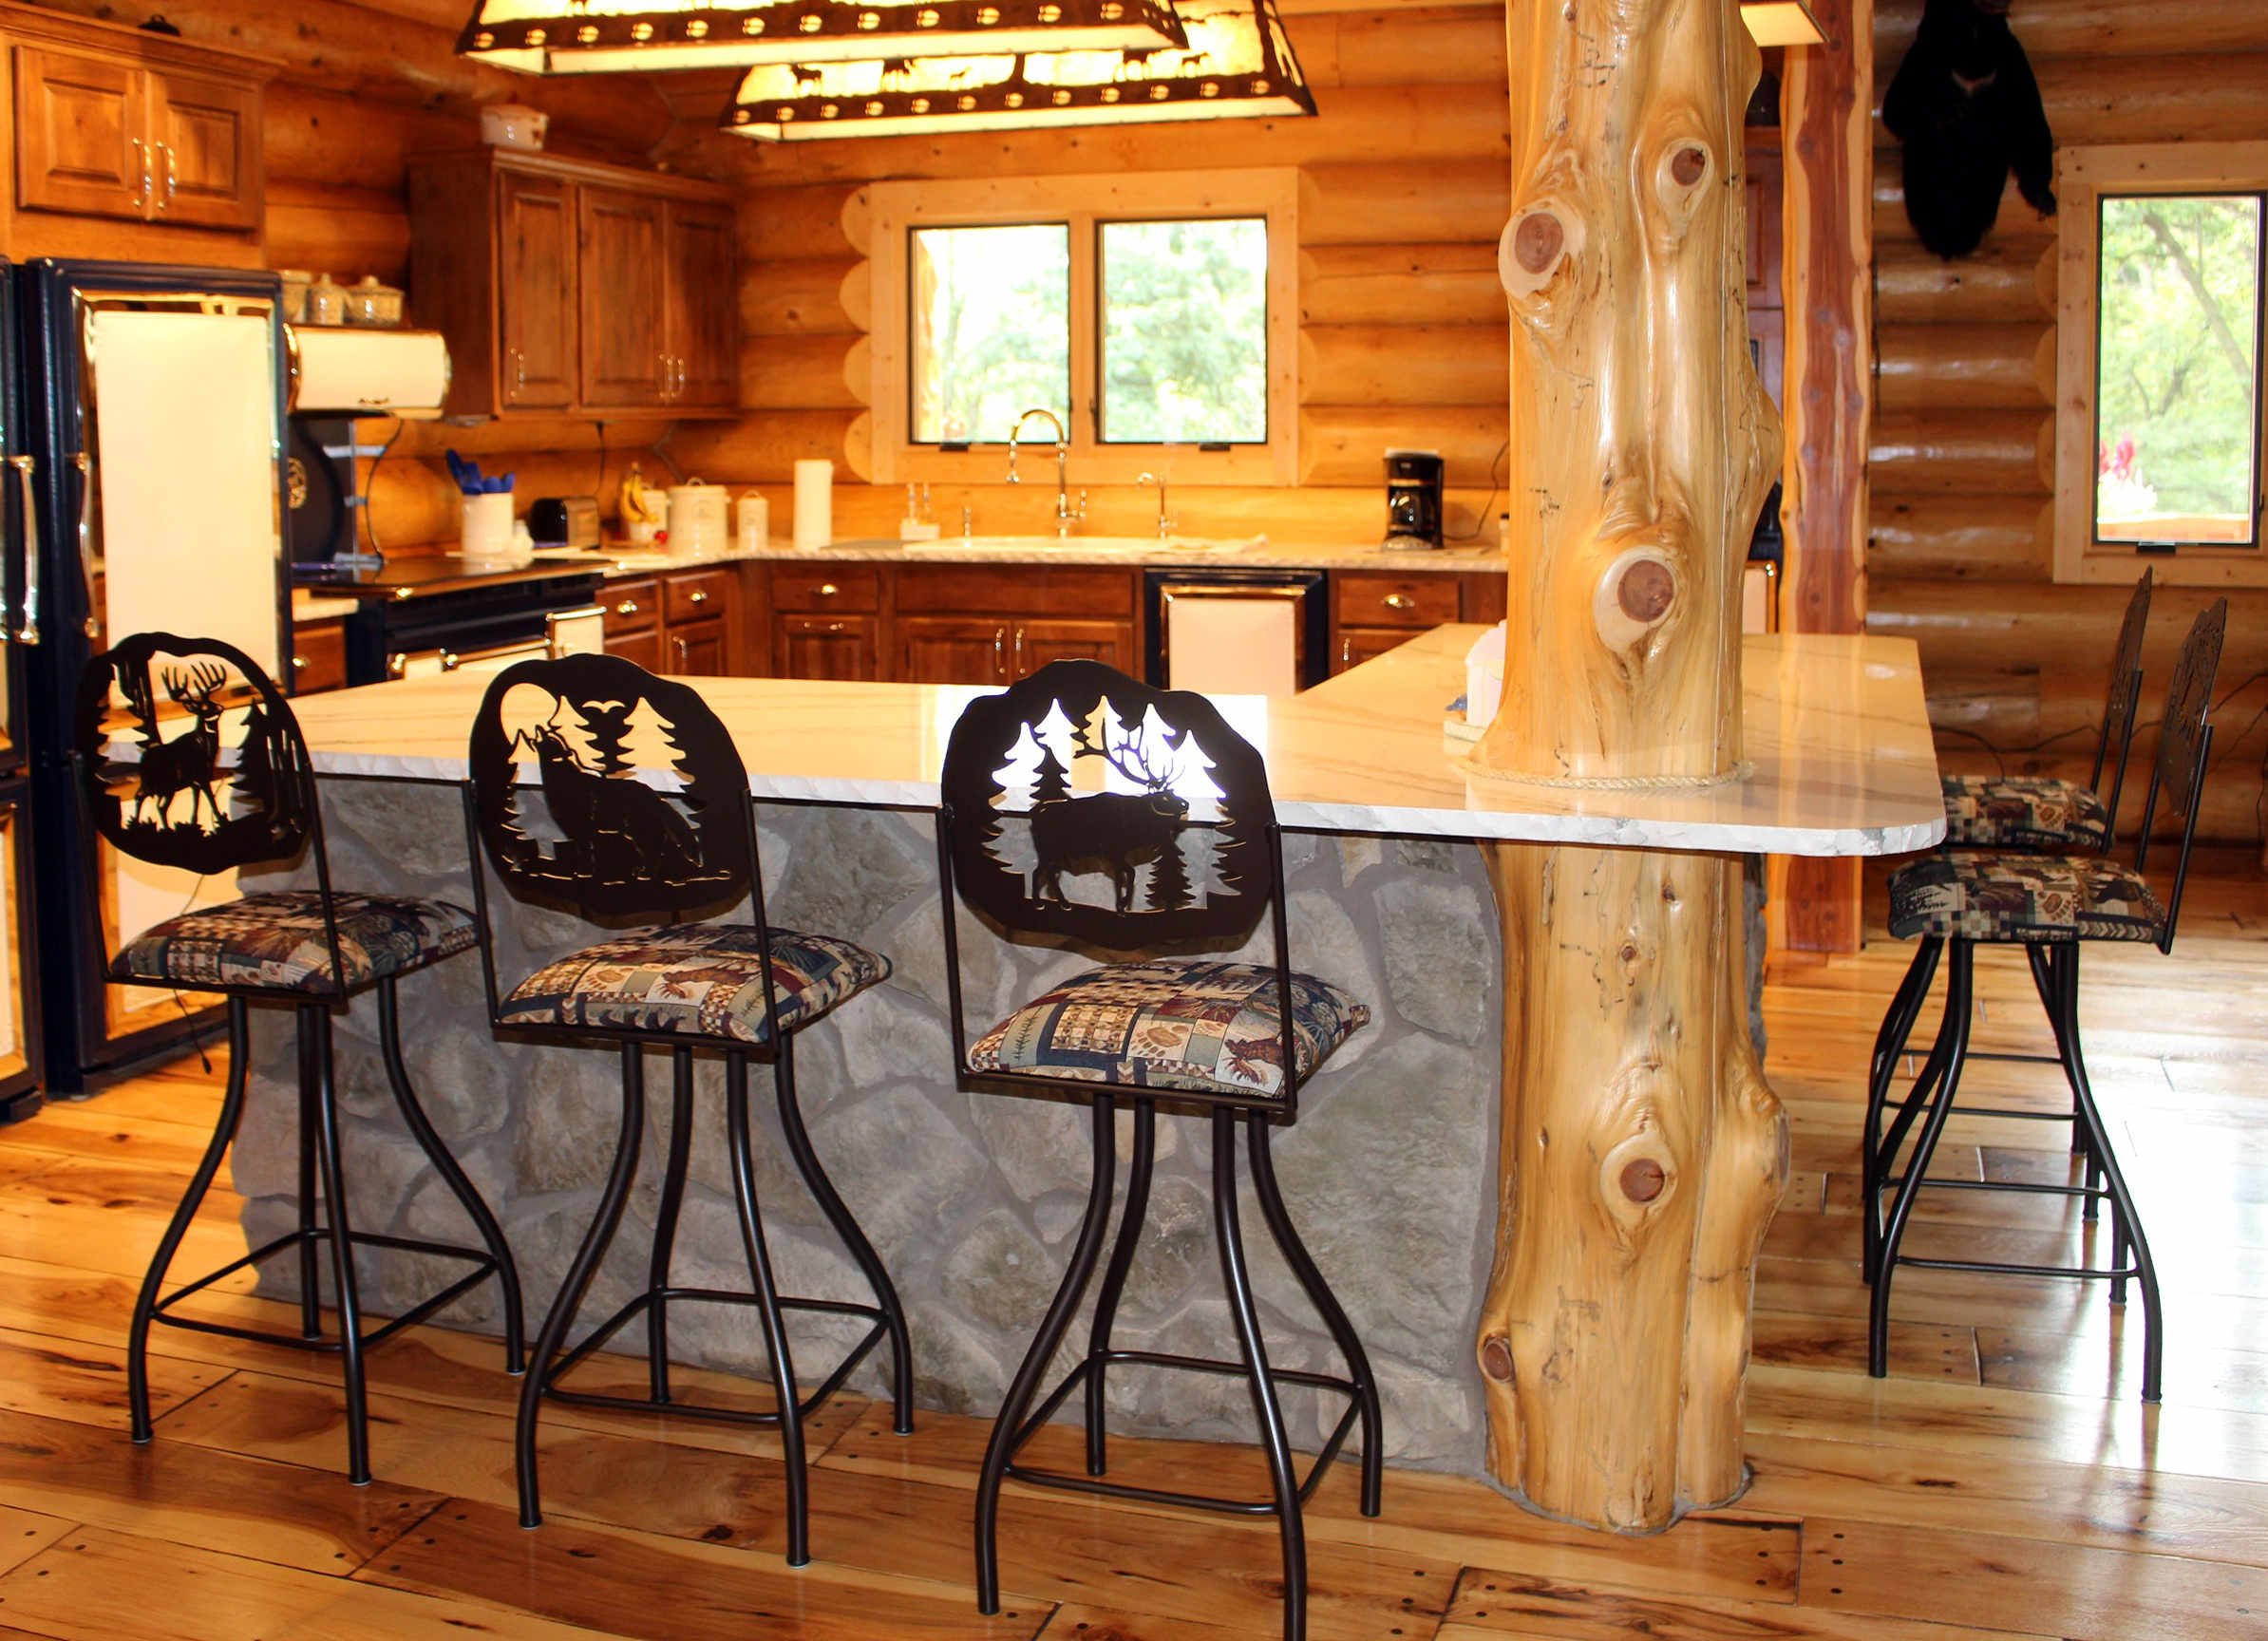 Kitchen Counter And Stools Rustic Bar Stools And Furniture